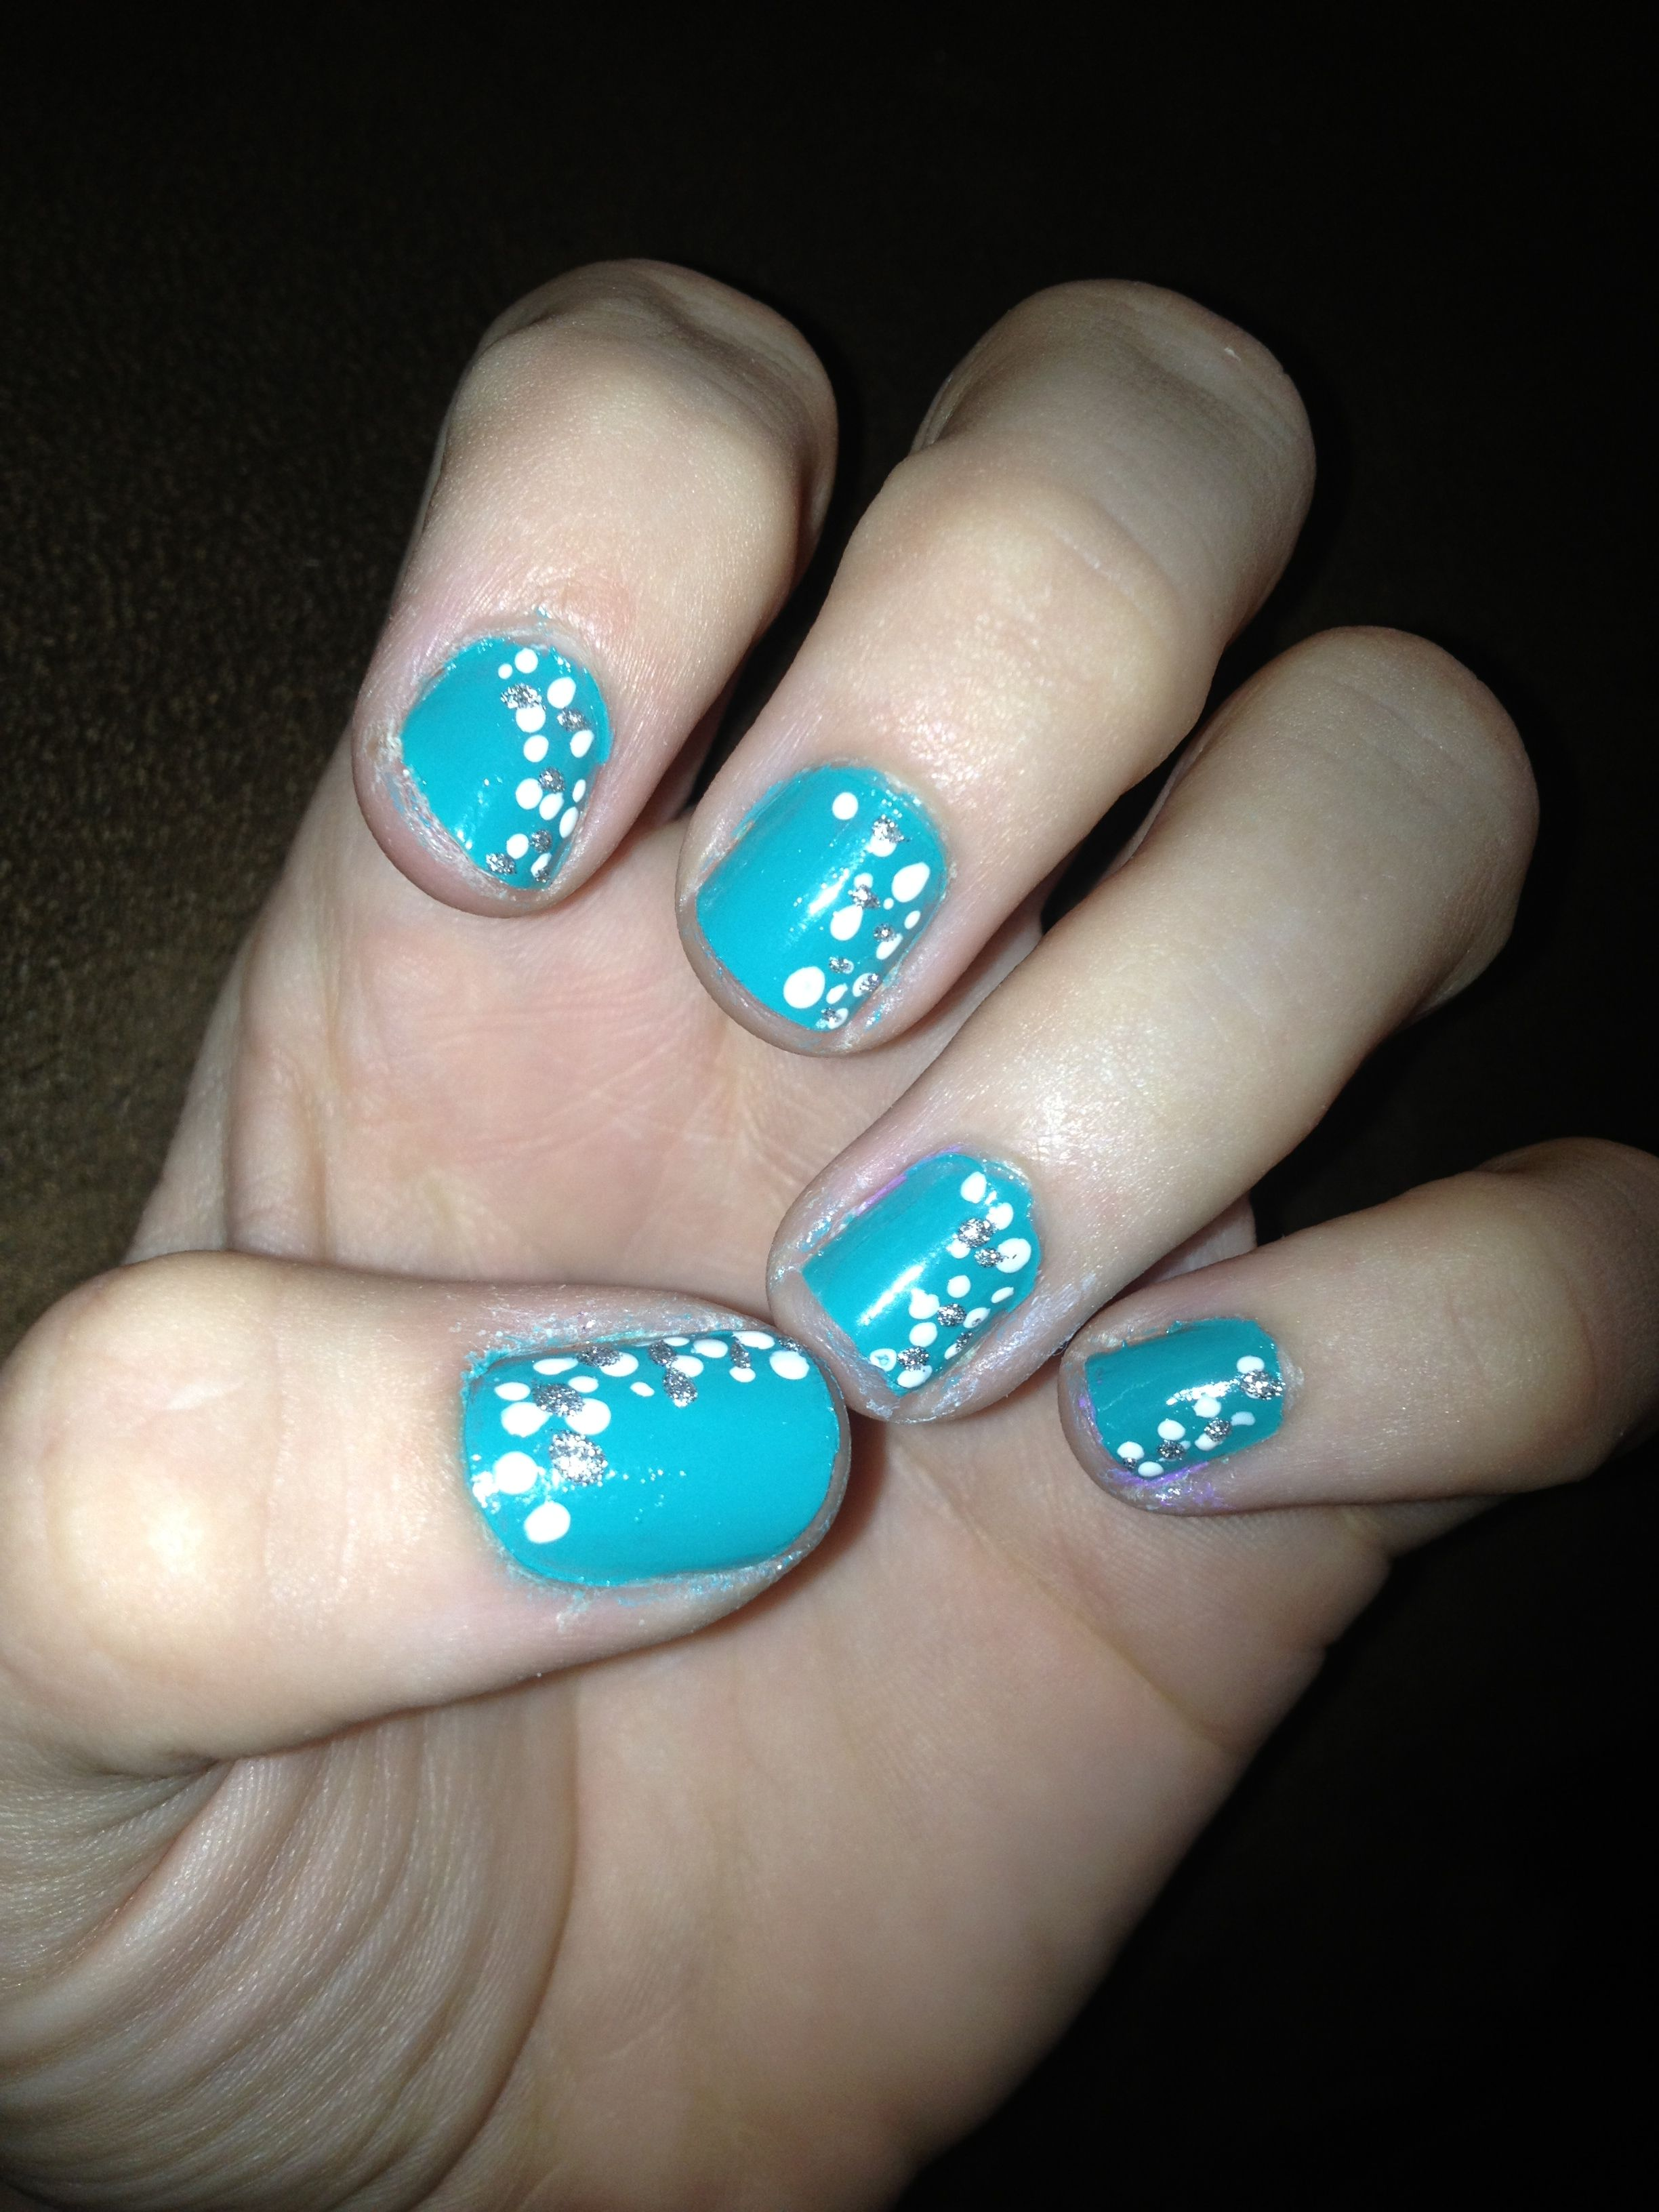 Pretty and easy to do yourself nails my style pinterest pretty and easy to do yourself nails solutioingenieria Choice Image